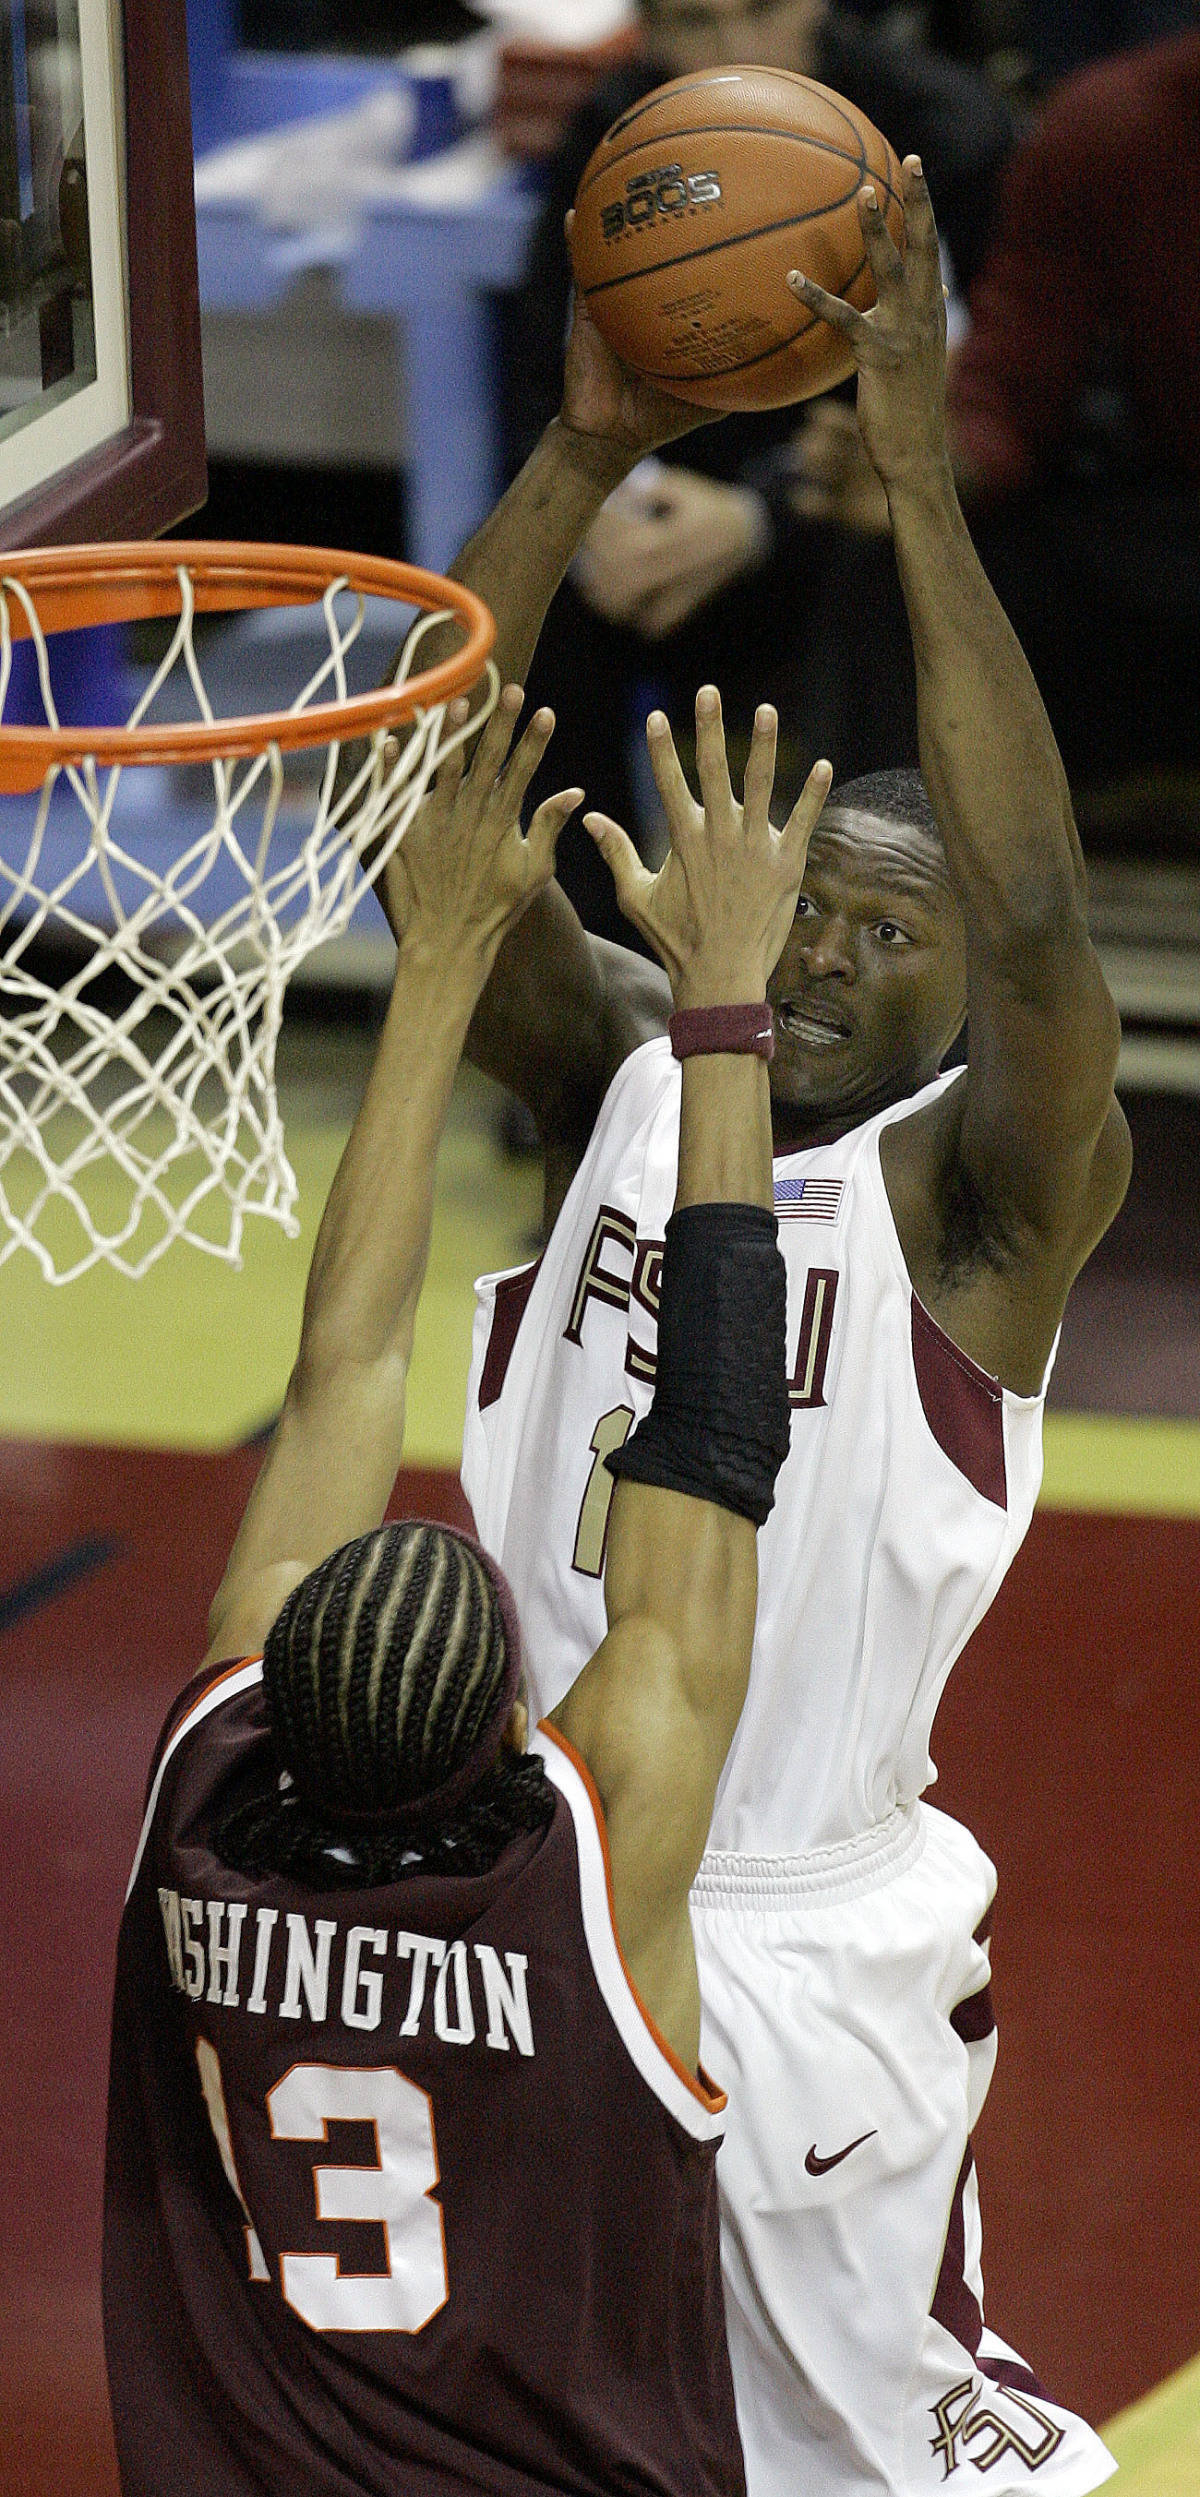 Florida State's Al Thornton, right, drives for two points as Virginia Tech's Deron Washington defends during the first half of a college basketball game, Wednesday, Jan. 17, 2007, in Tallahassee, Fla.(AP Photo/Phil Coale)